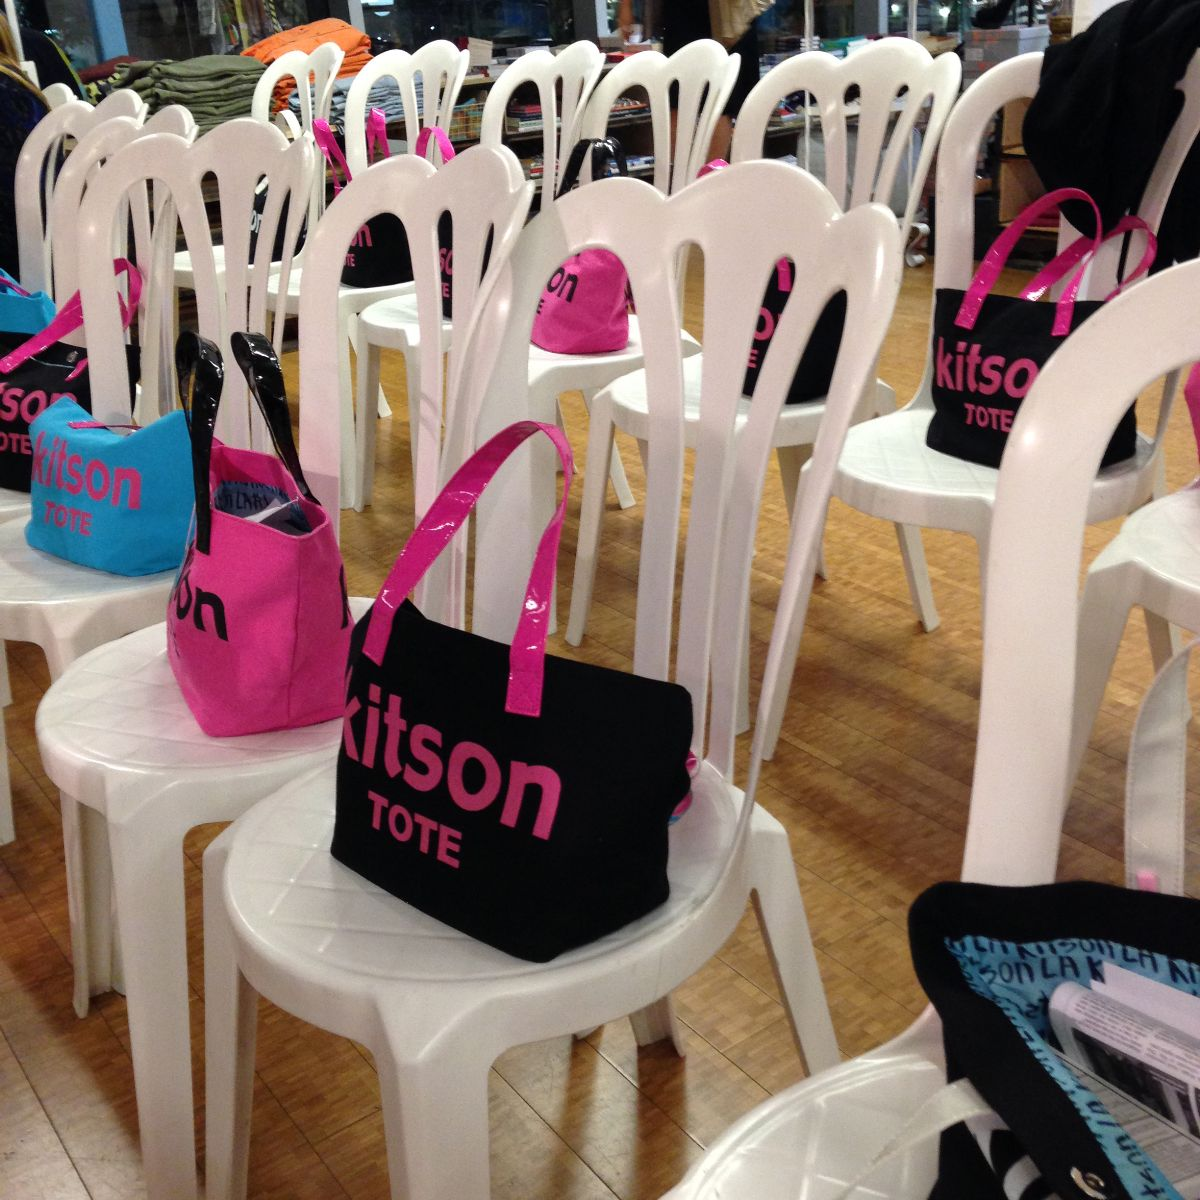 kitson tote bags, simply stylist, currently crushing